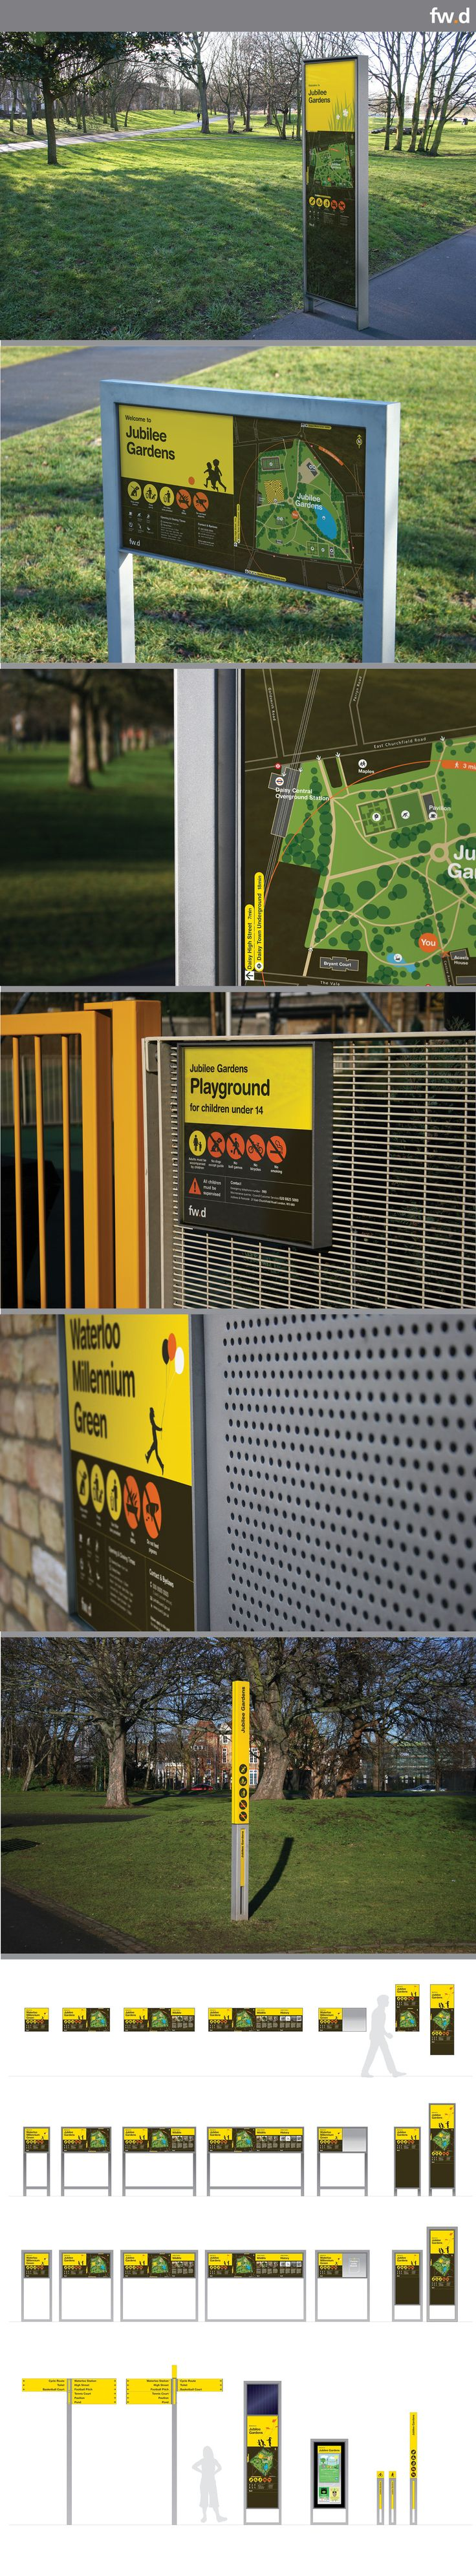 Daisy by fwdesign.  A modular wayfinding sign system for parks.  http://www.fwd-product.com/